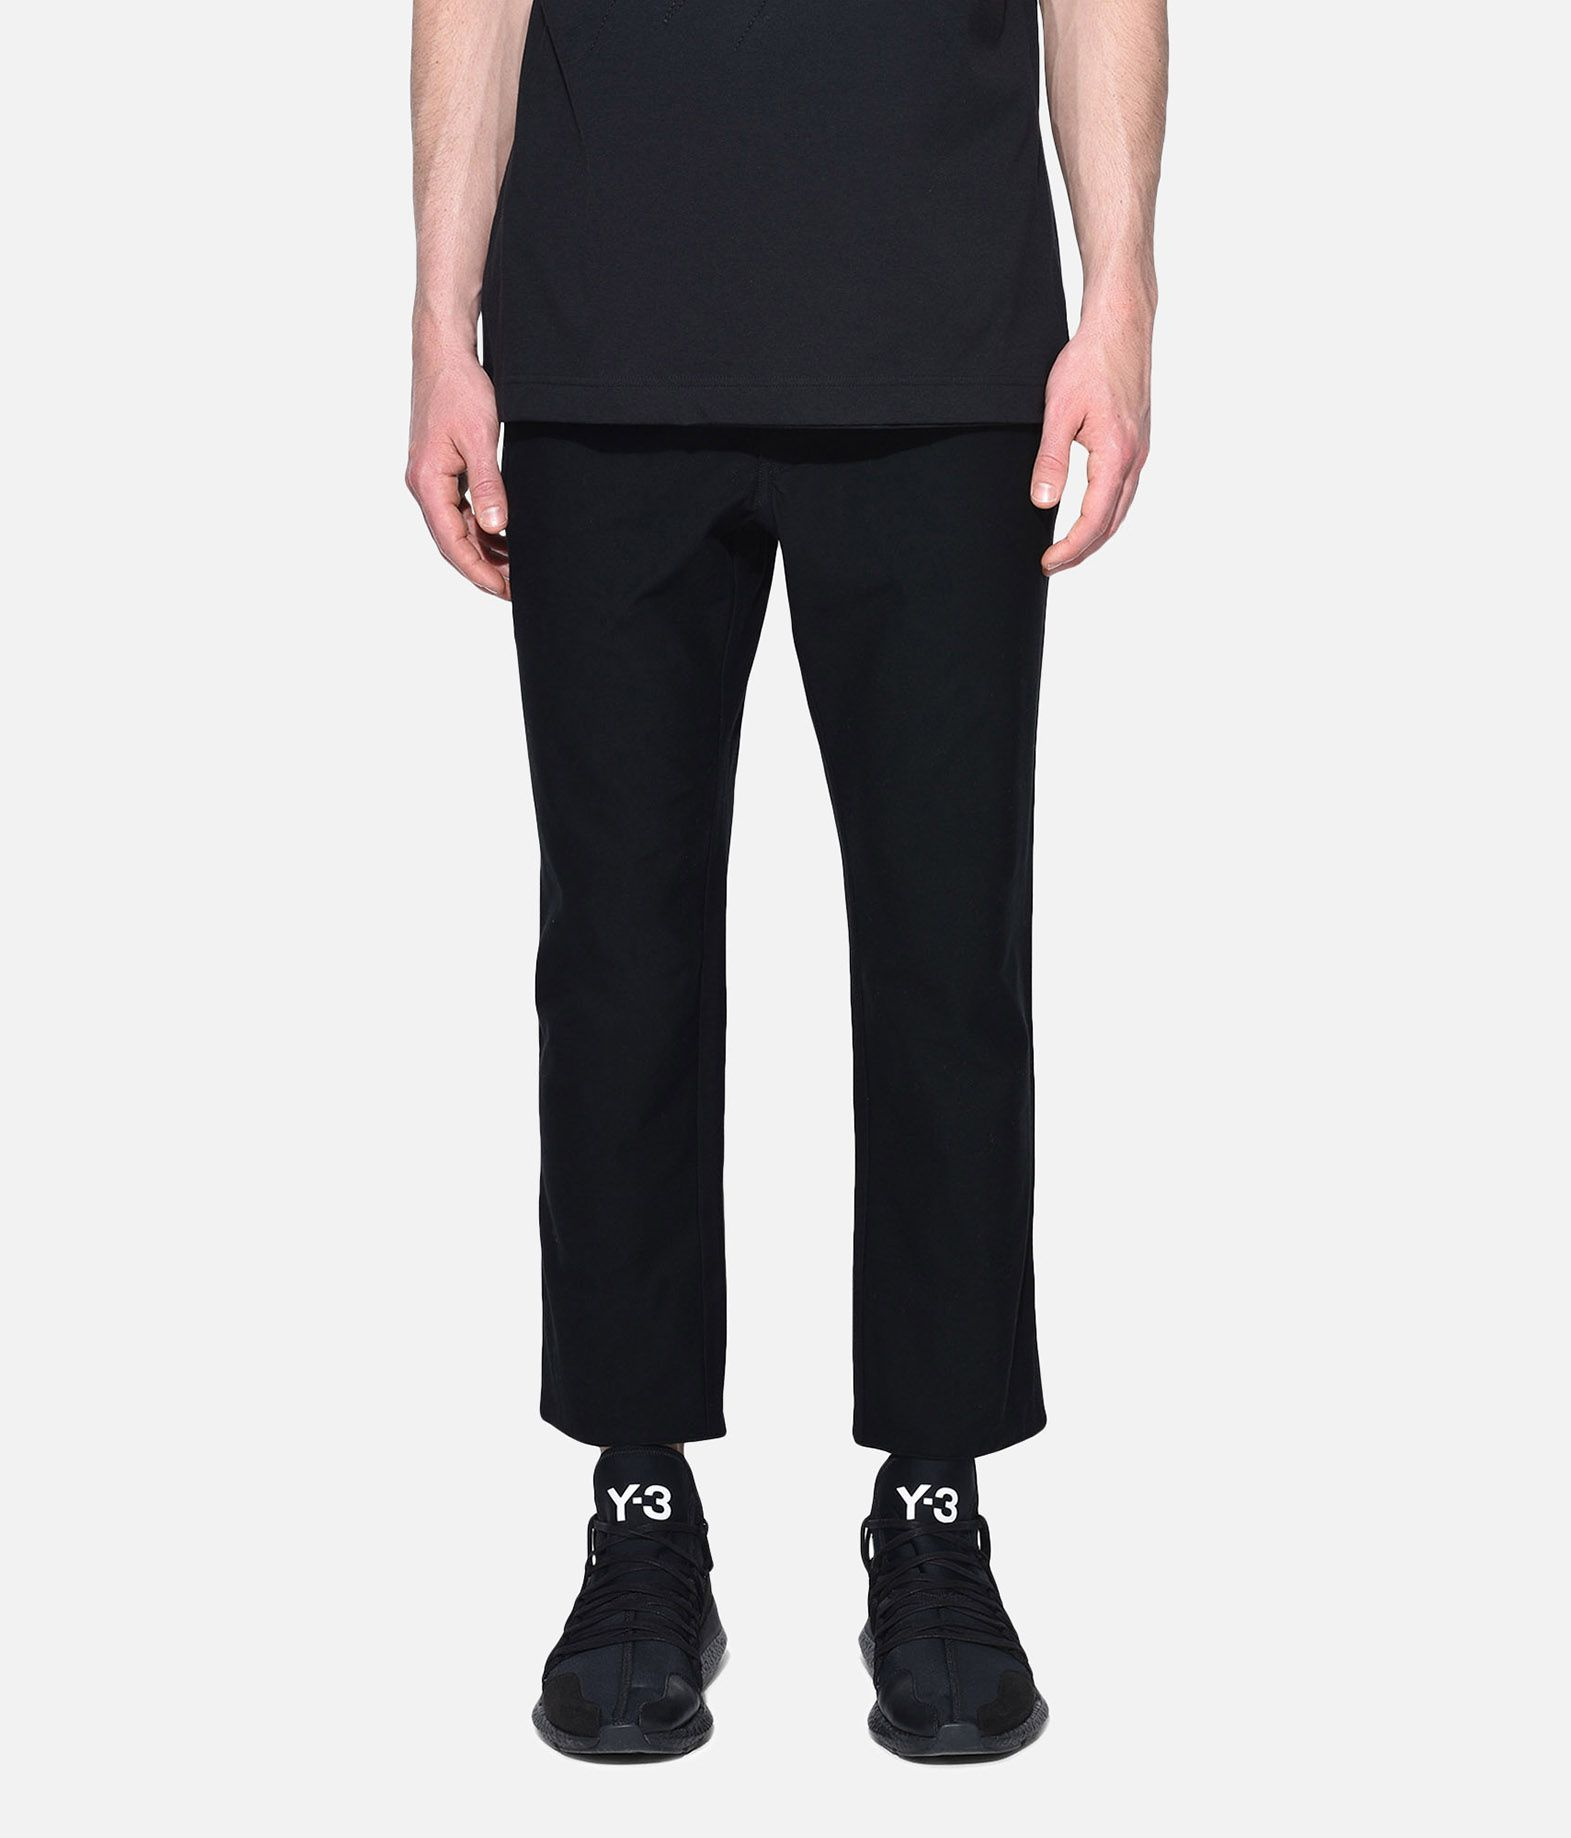 Y-3 Y-3 Twill Cropped Pants Pantalon Homme r